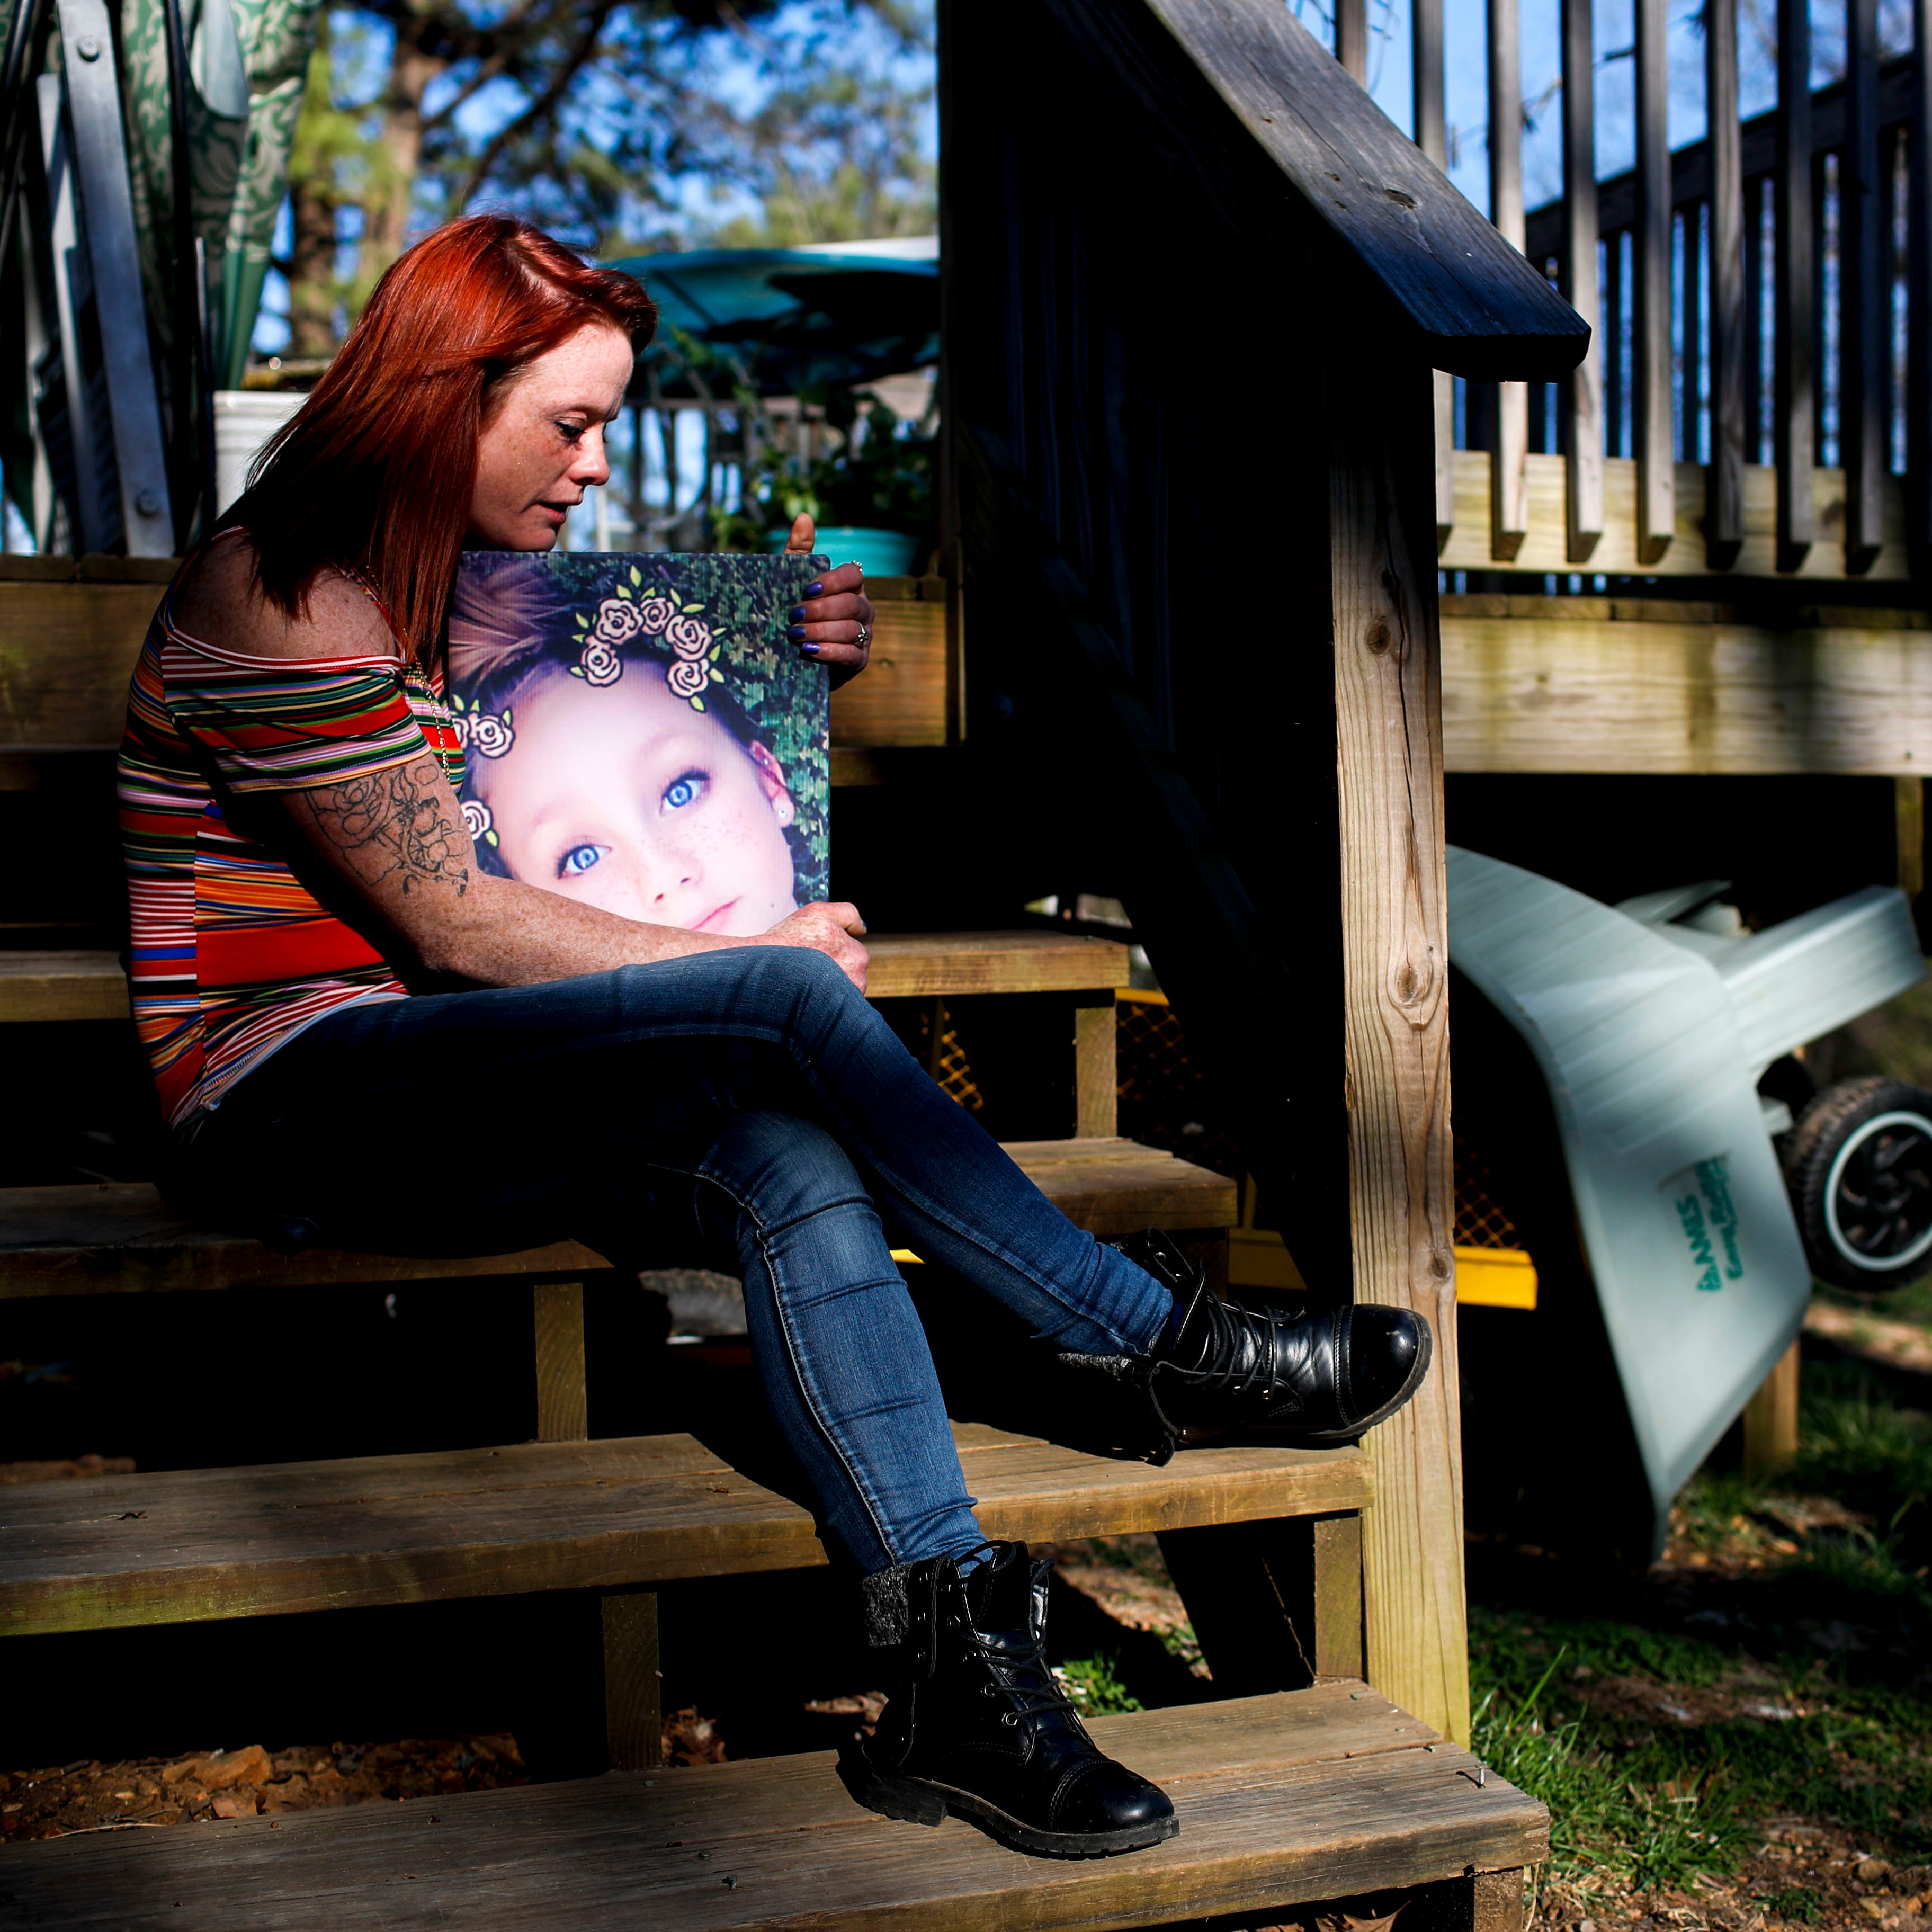 Teen suicide: Maybe the best we can do is to share our pain | Opinion